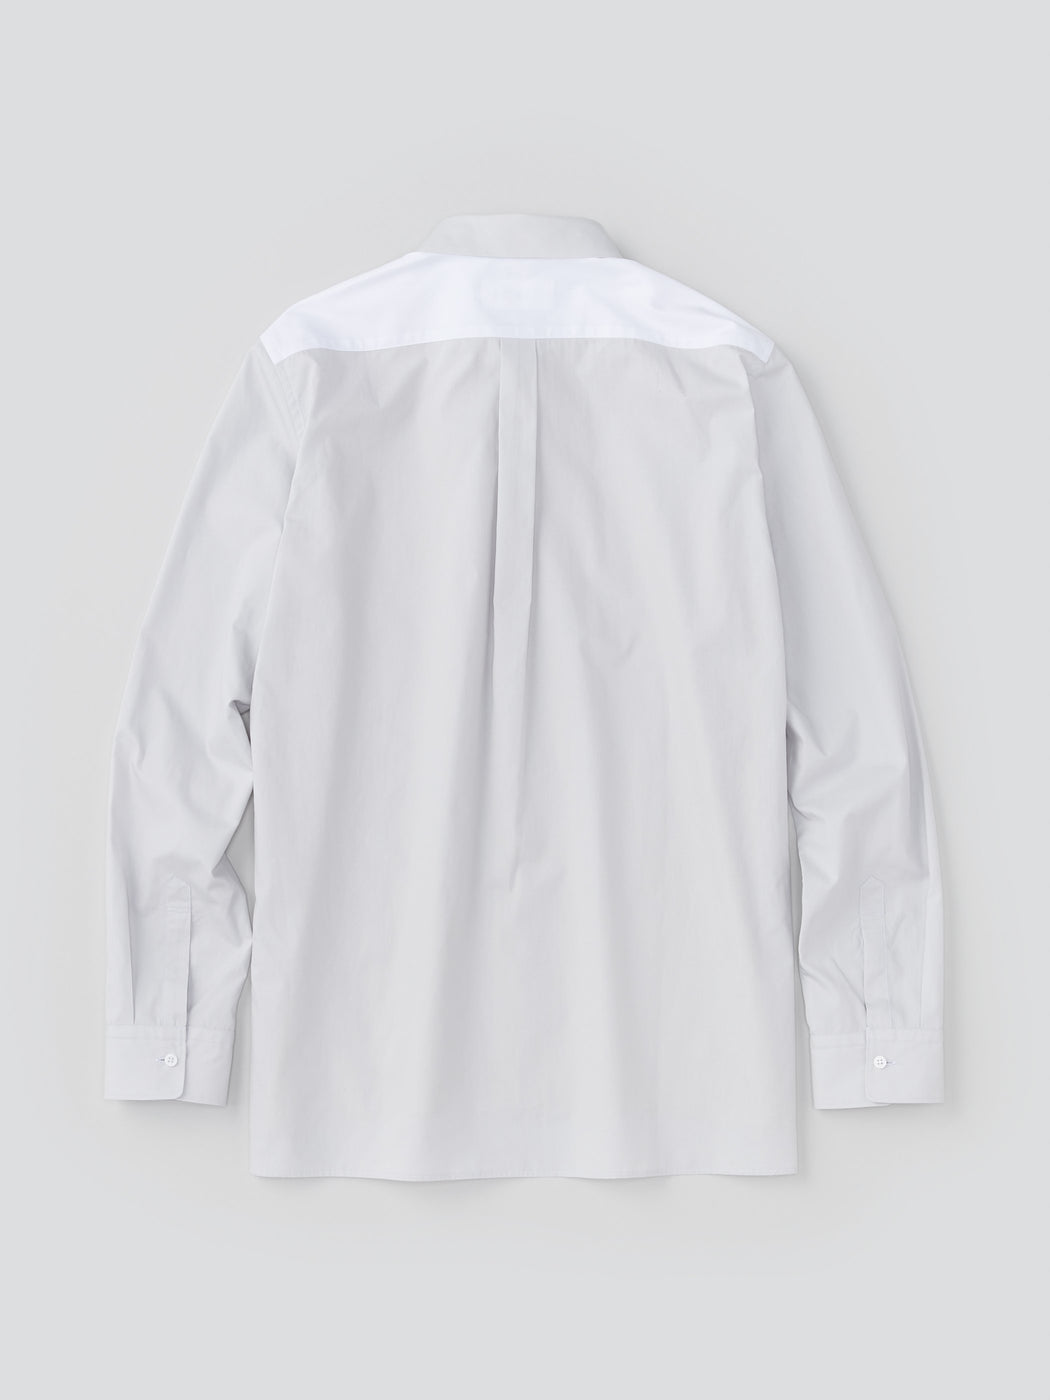 ALOYE Color Blocks Men's Long Sleeve Shirt Off white-Orange